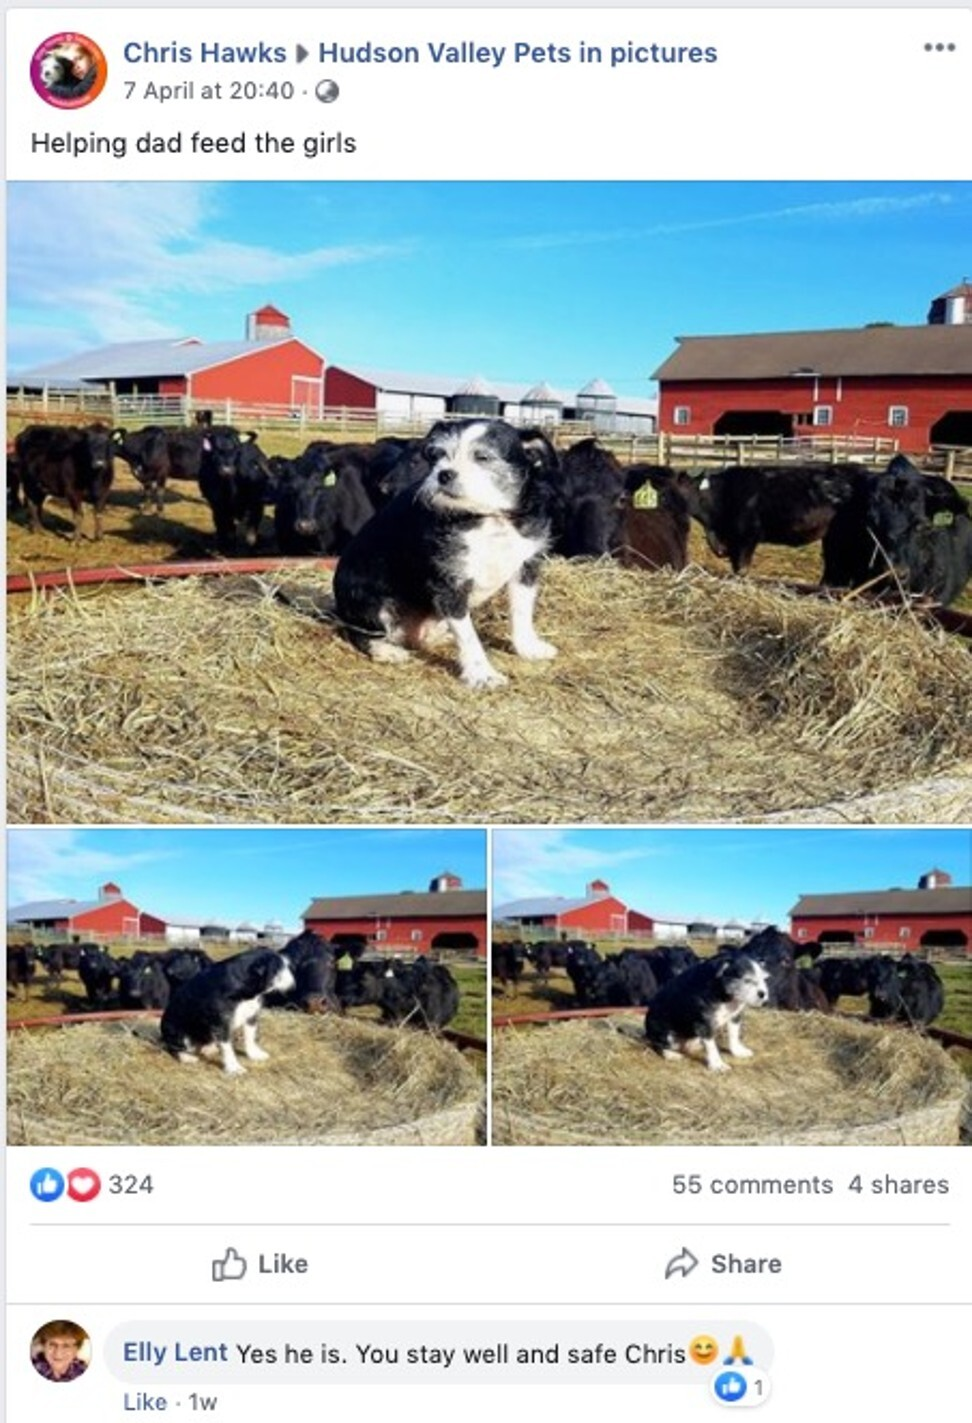 Tyson, a wire-haired terrier mix who is recovering from herniated disc surgery, sits on a mound of hay surrounded by cows. Photo: Facebook / Chris Hawks